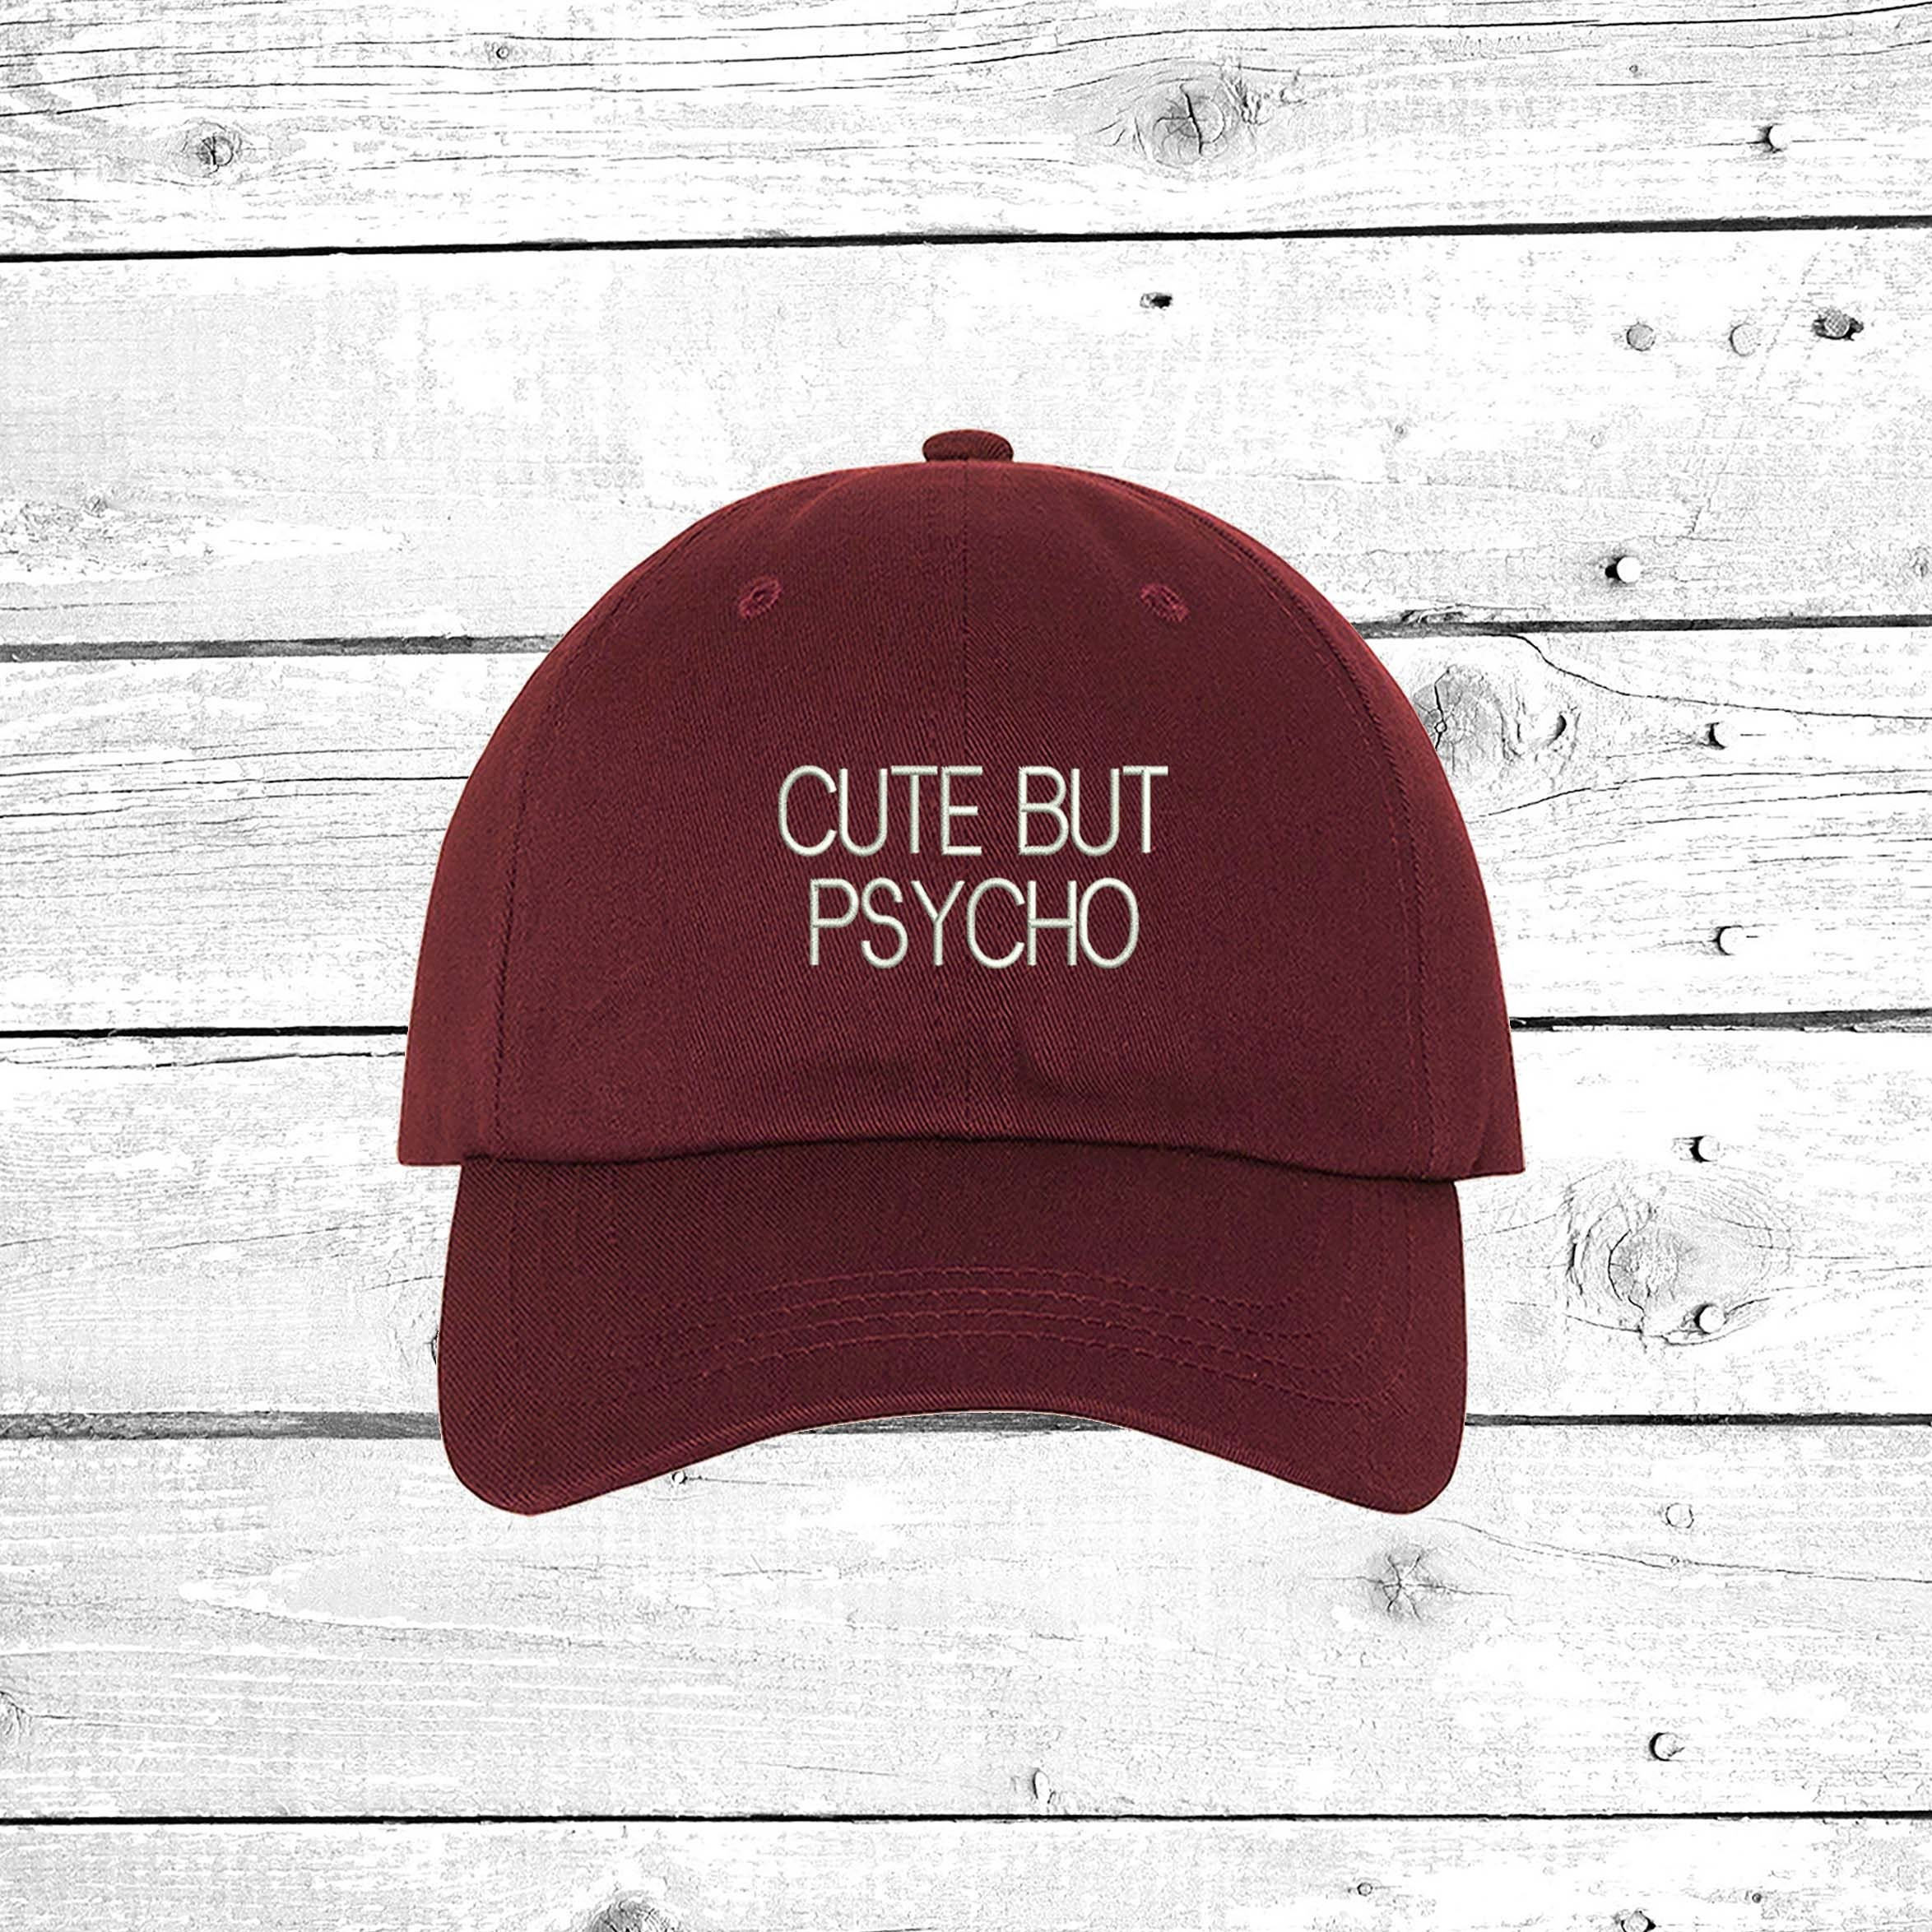 09b2d9fedbe6f Cute But Psycho Baseball Cap Unisex Hats for Women Dad Hats Tumblr Funny  Hats Bossy Lady Gift Ideas Psycho Dad Hats. gallery photo ...